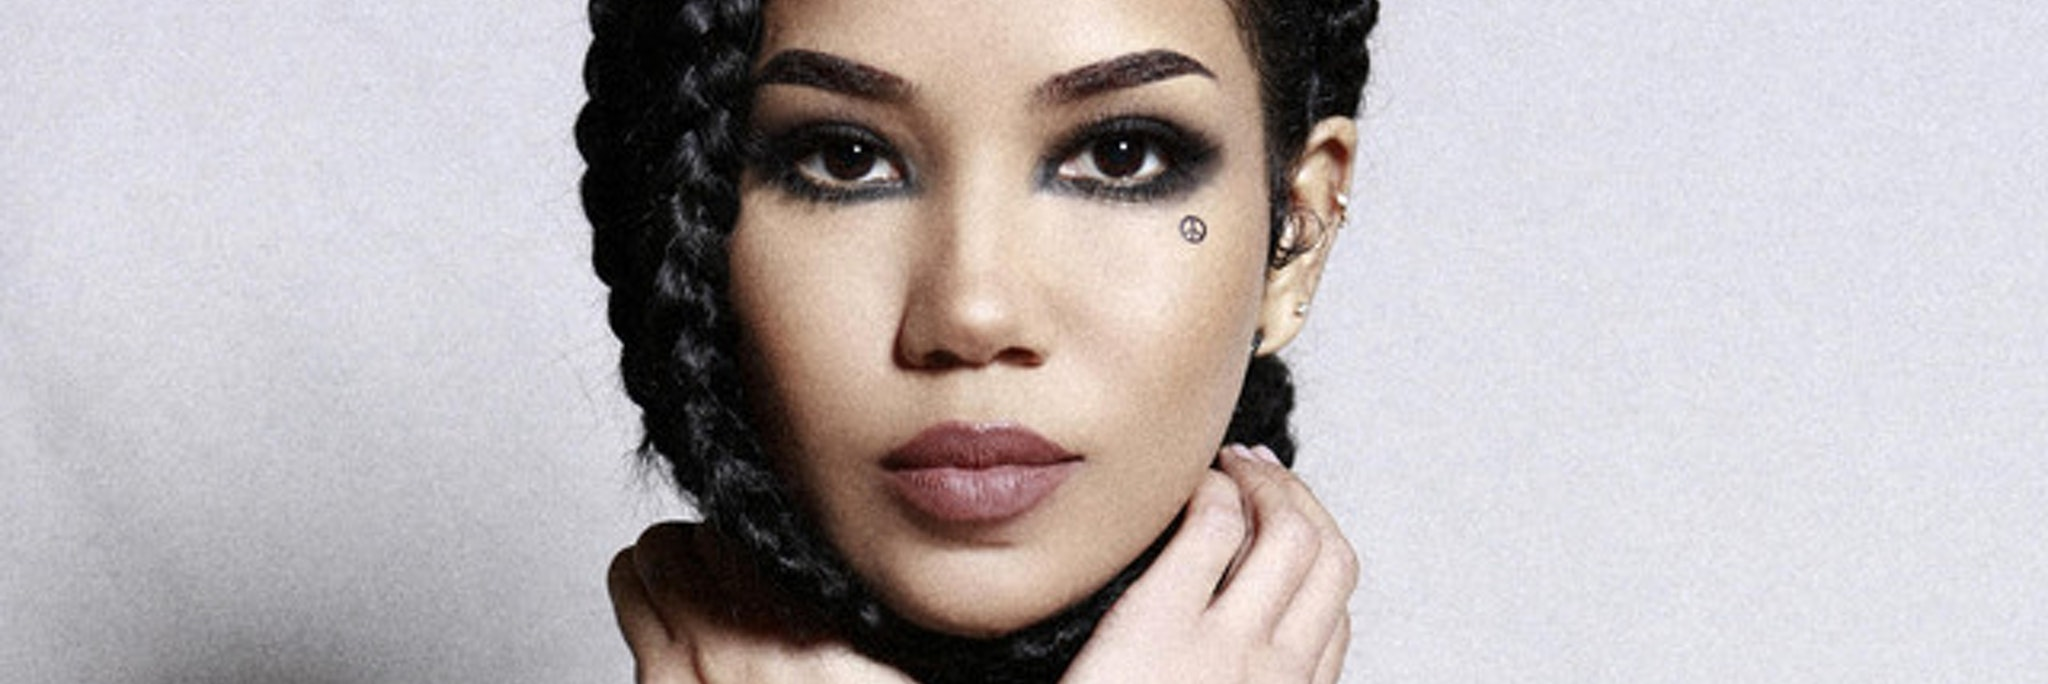 Jhene aiko souled out zip file